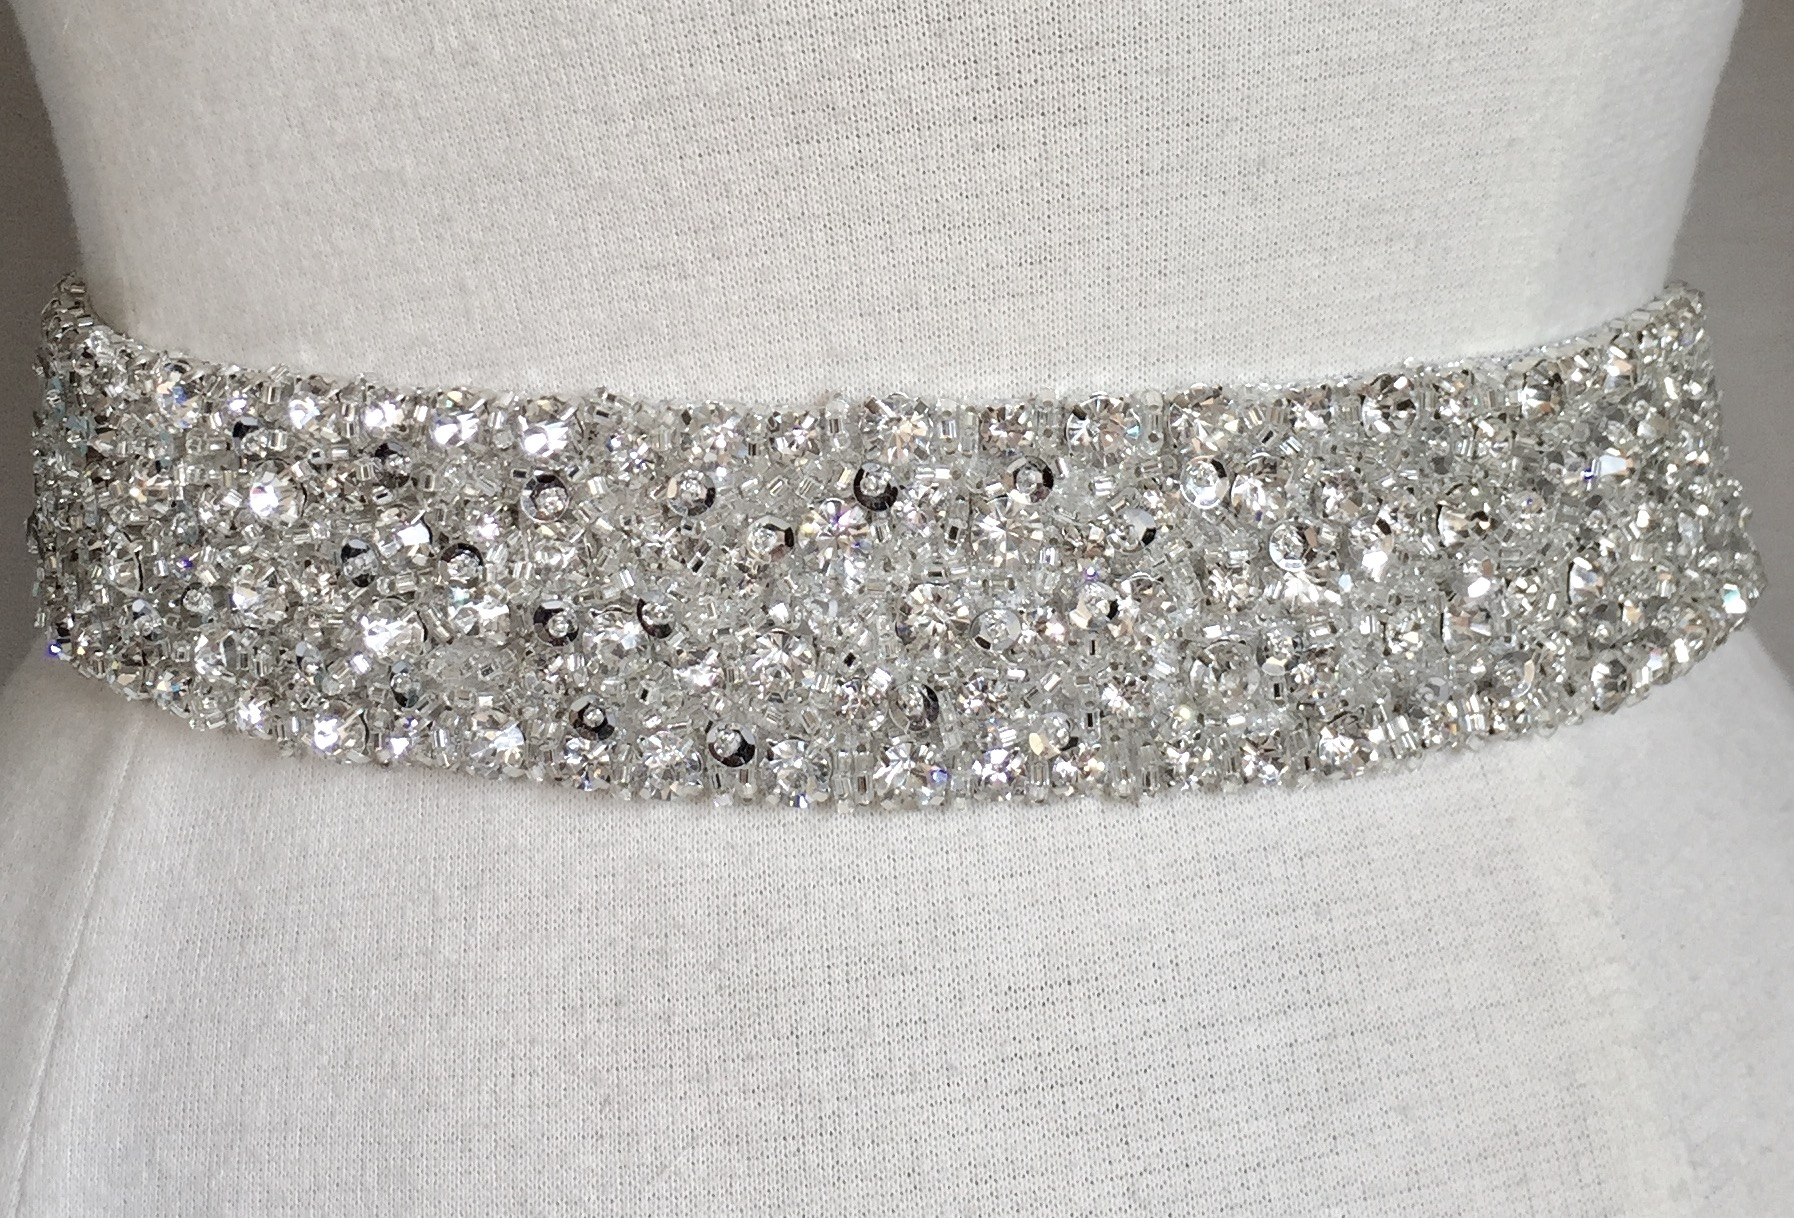 Heavily embroidered silver sash with